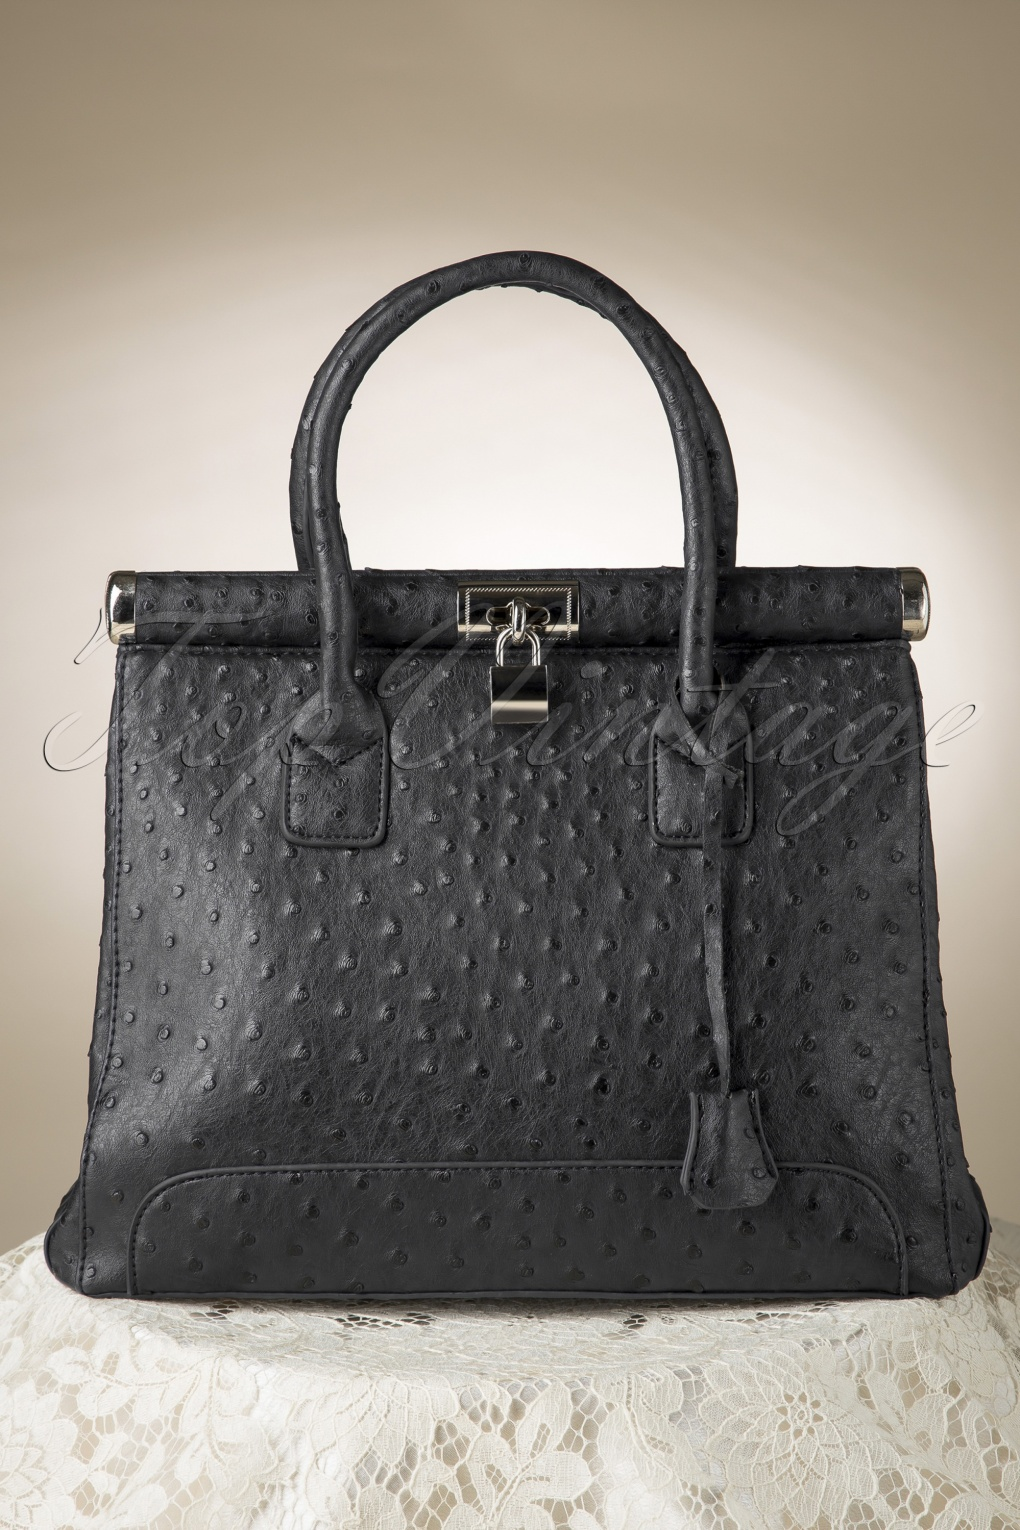 So Painfully Die Ostriches for Luxury Handbag